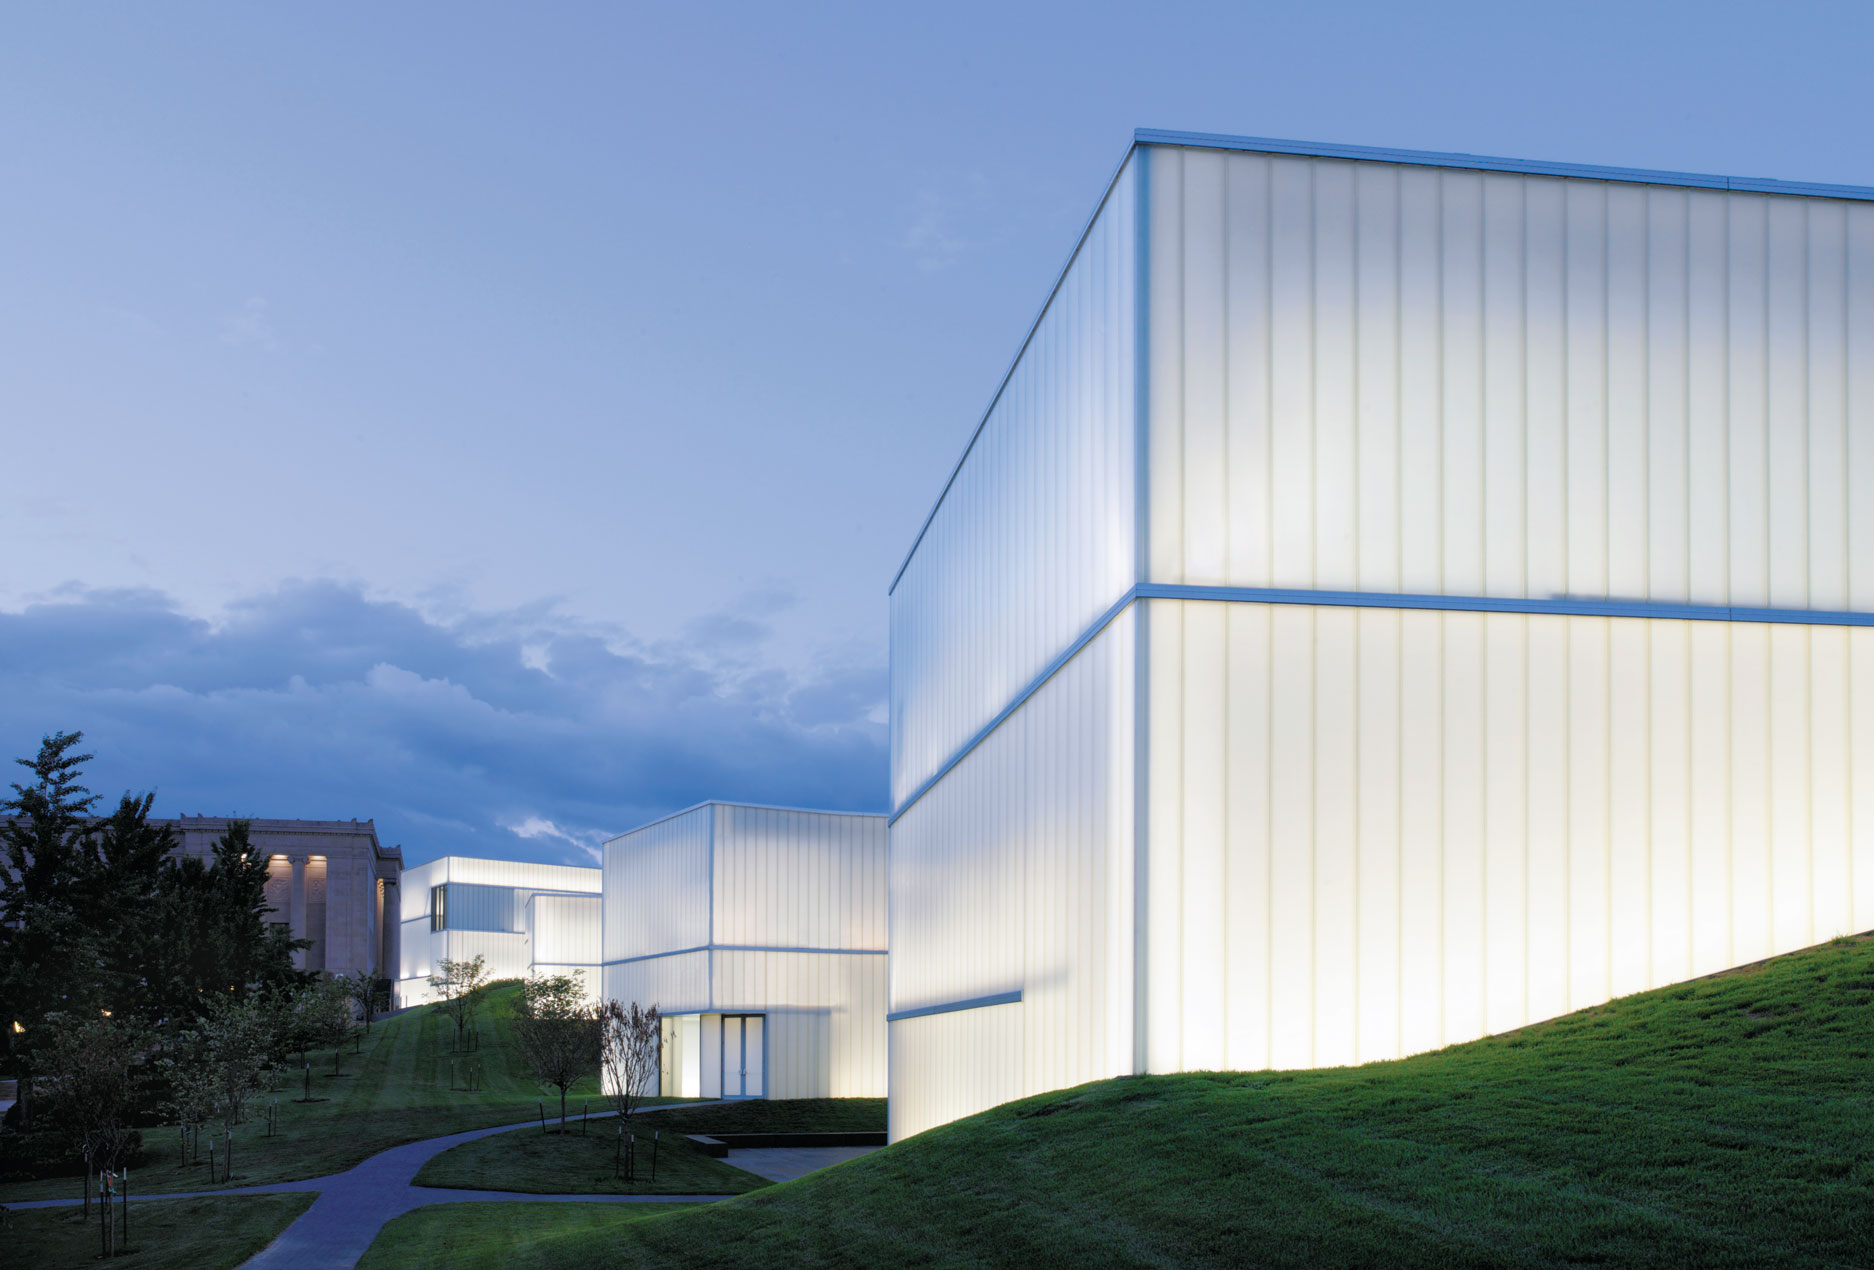 Steven holl architects to design arts buildings 2 4 2008 for Architecture firms kc